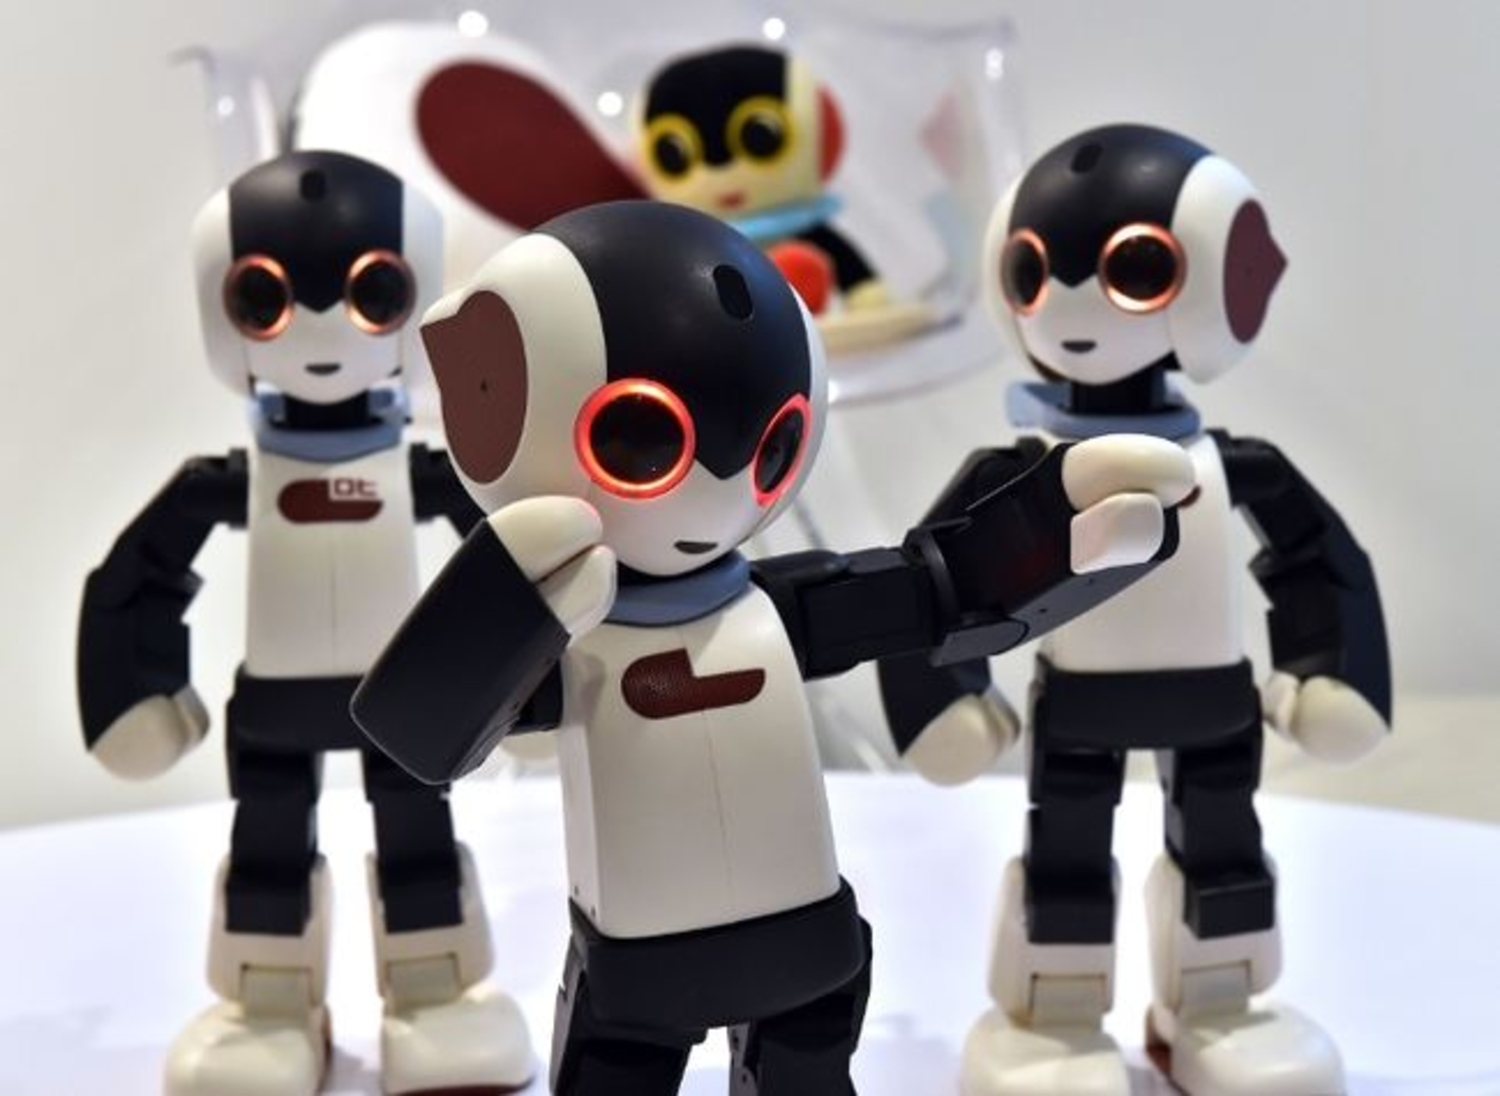 Watch These Little Humanoid Robots Dance